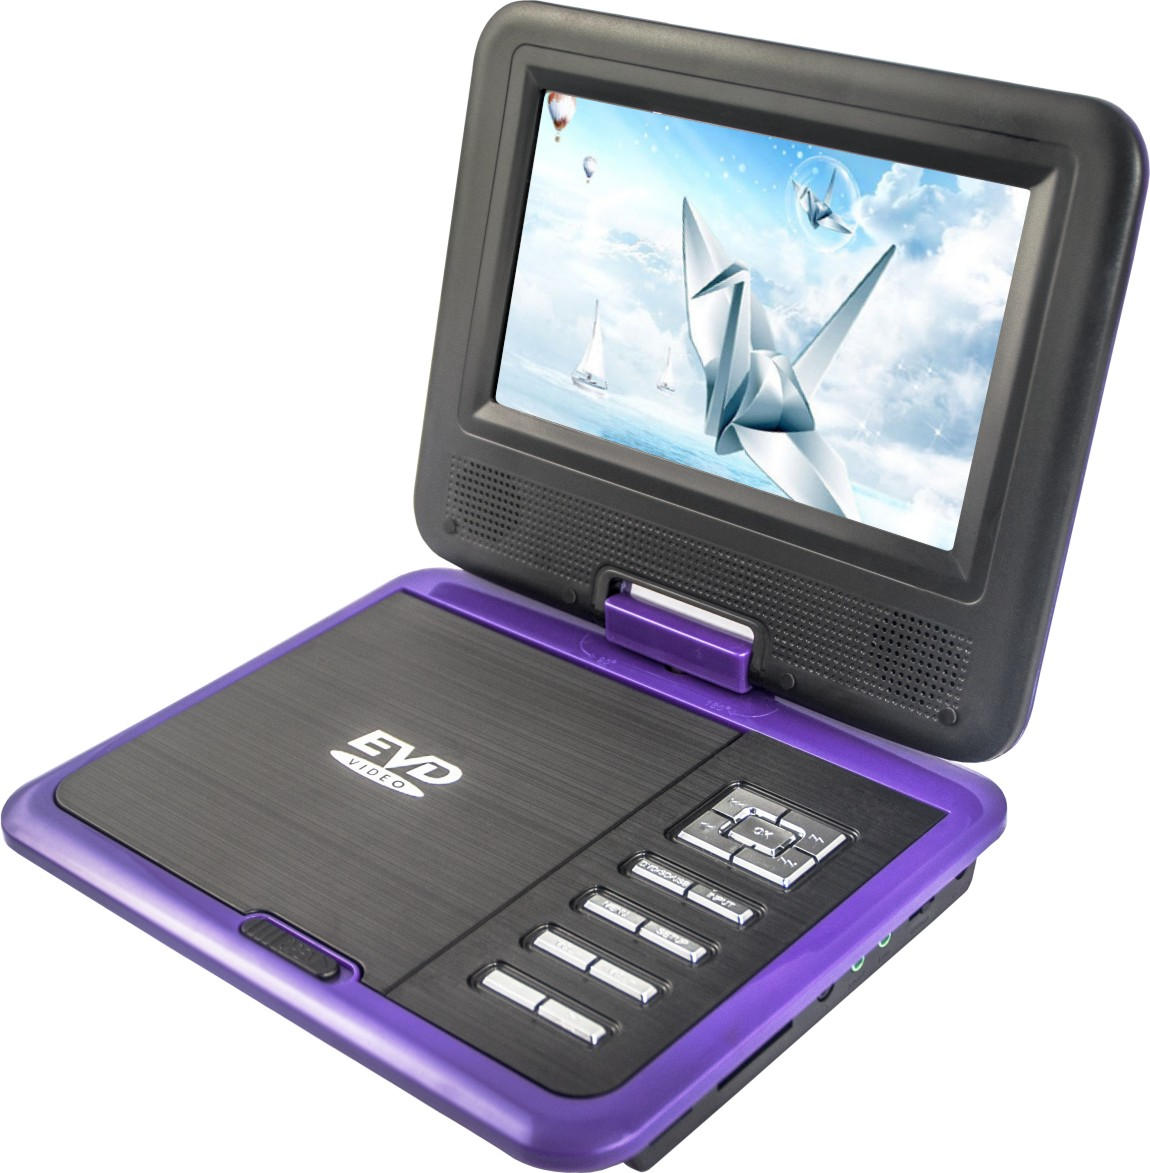 mtk solution small size dvd player with usb function. Black Bedroom Furniture Sets. Home Design Ideas